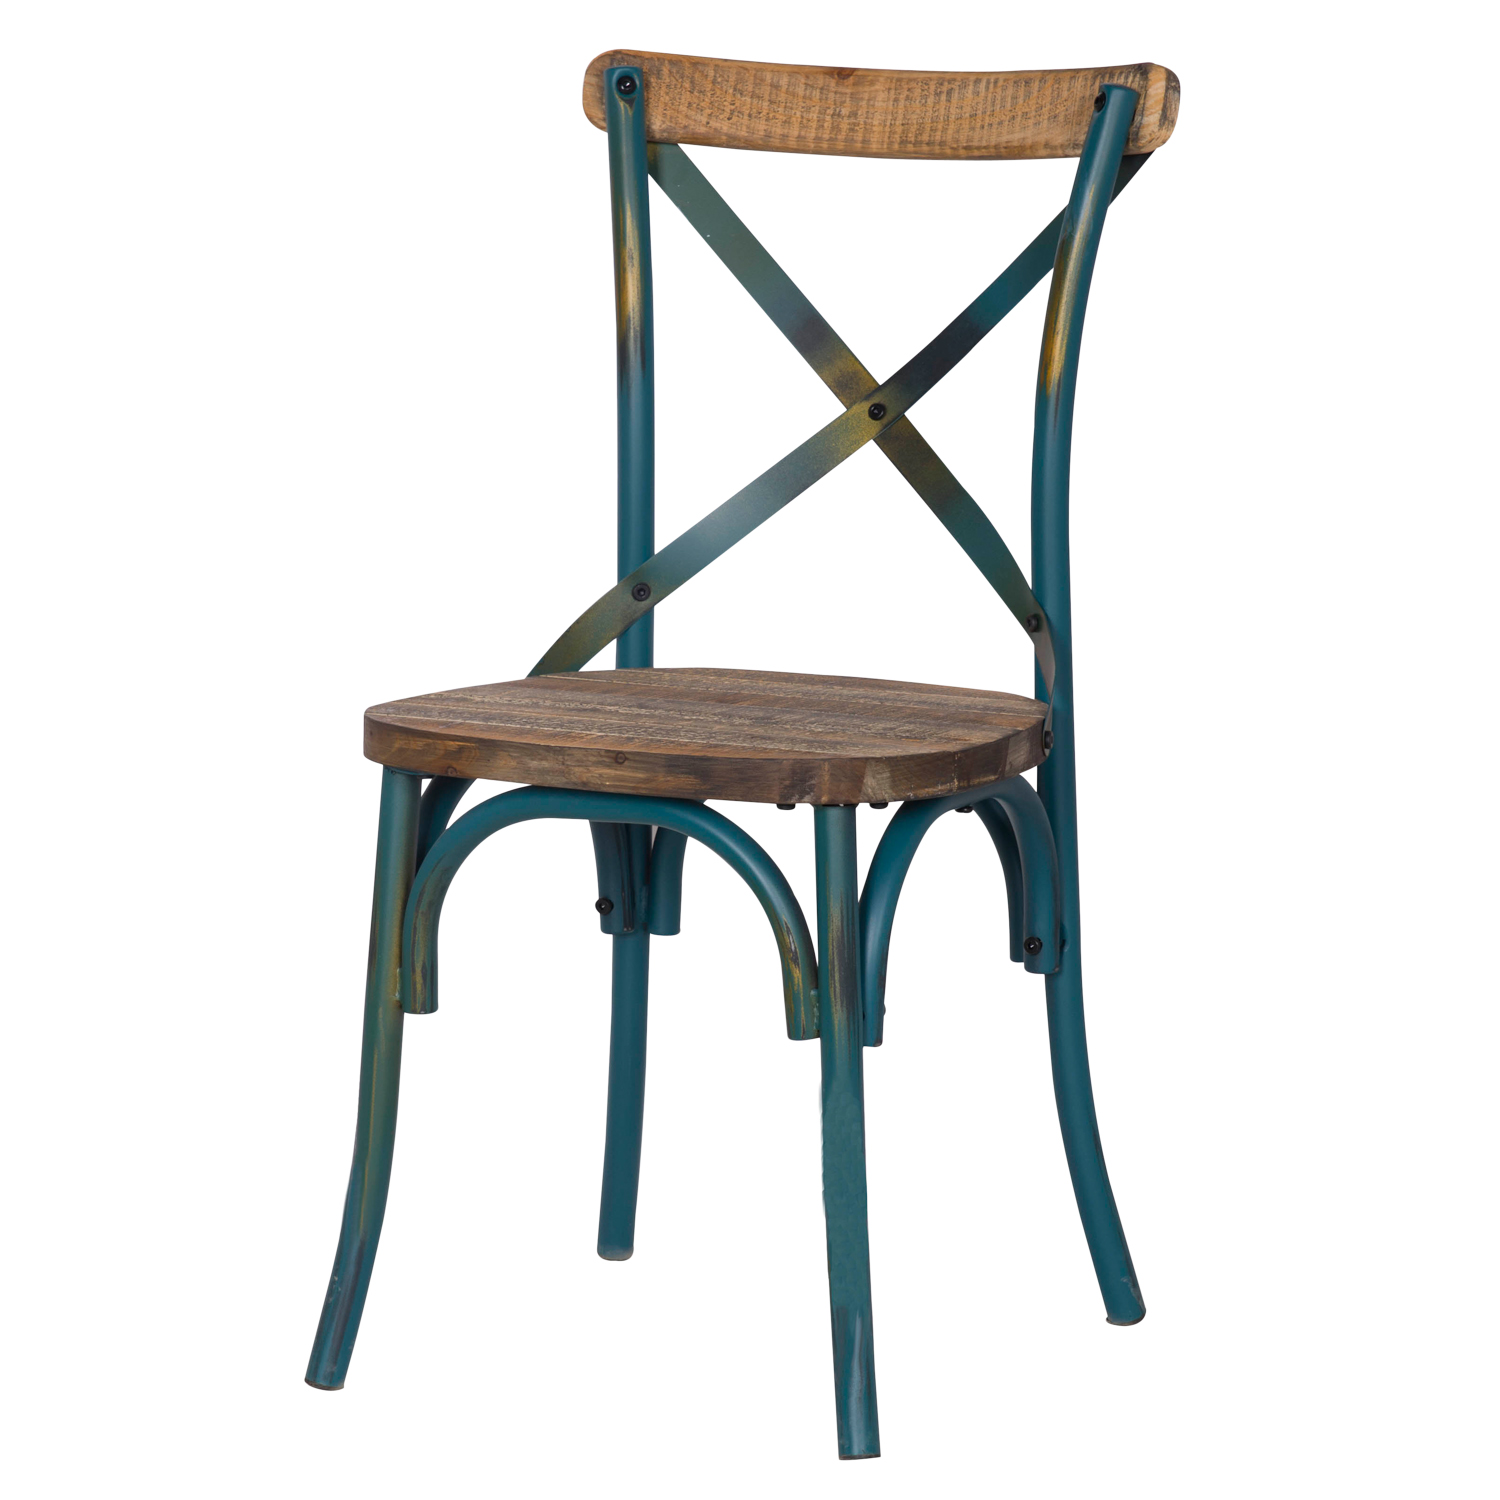 rustic metal dining chairs long chair couch sofa decenthome blue ch0282 4 ach282 distressed with cross back designed